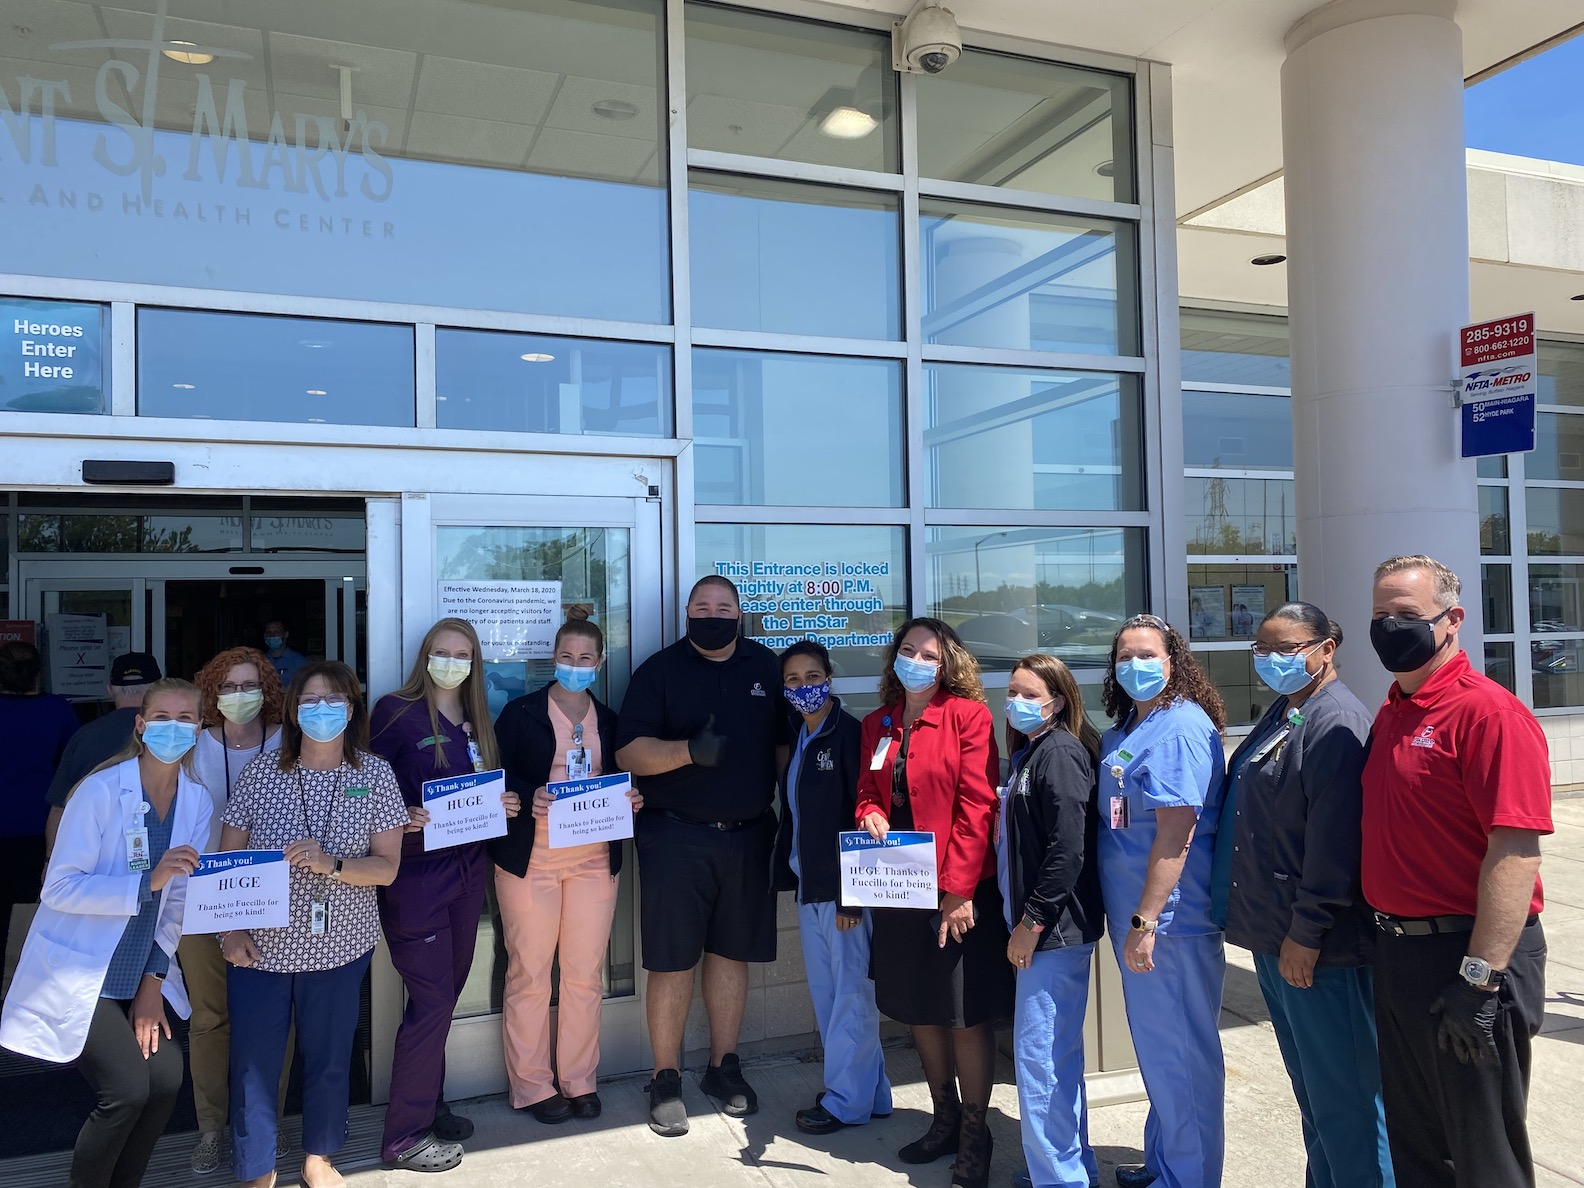 Mount St. Mary's Hospital and Fuccillo dealership employees on Grand Island after a donation was made at the Lewiston hospital. (Photos courtesy of Mount St. Mary's Hospital)